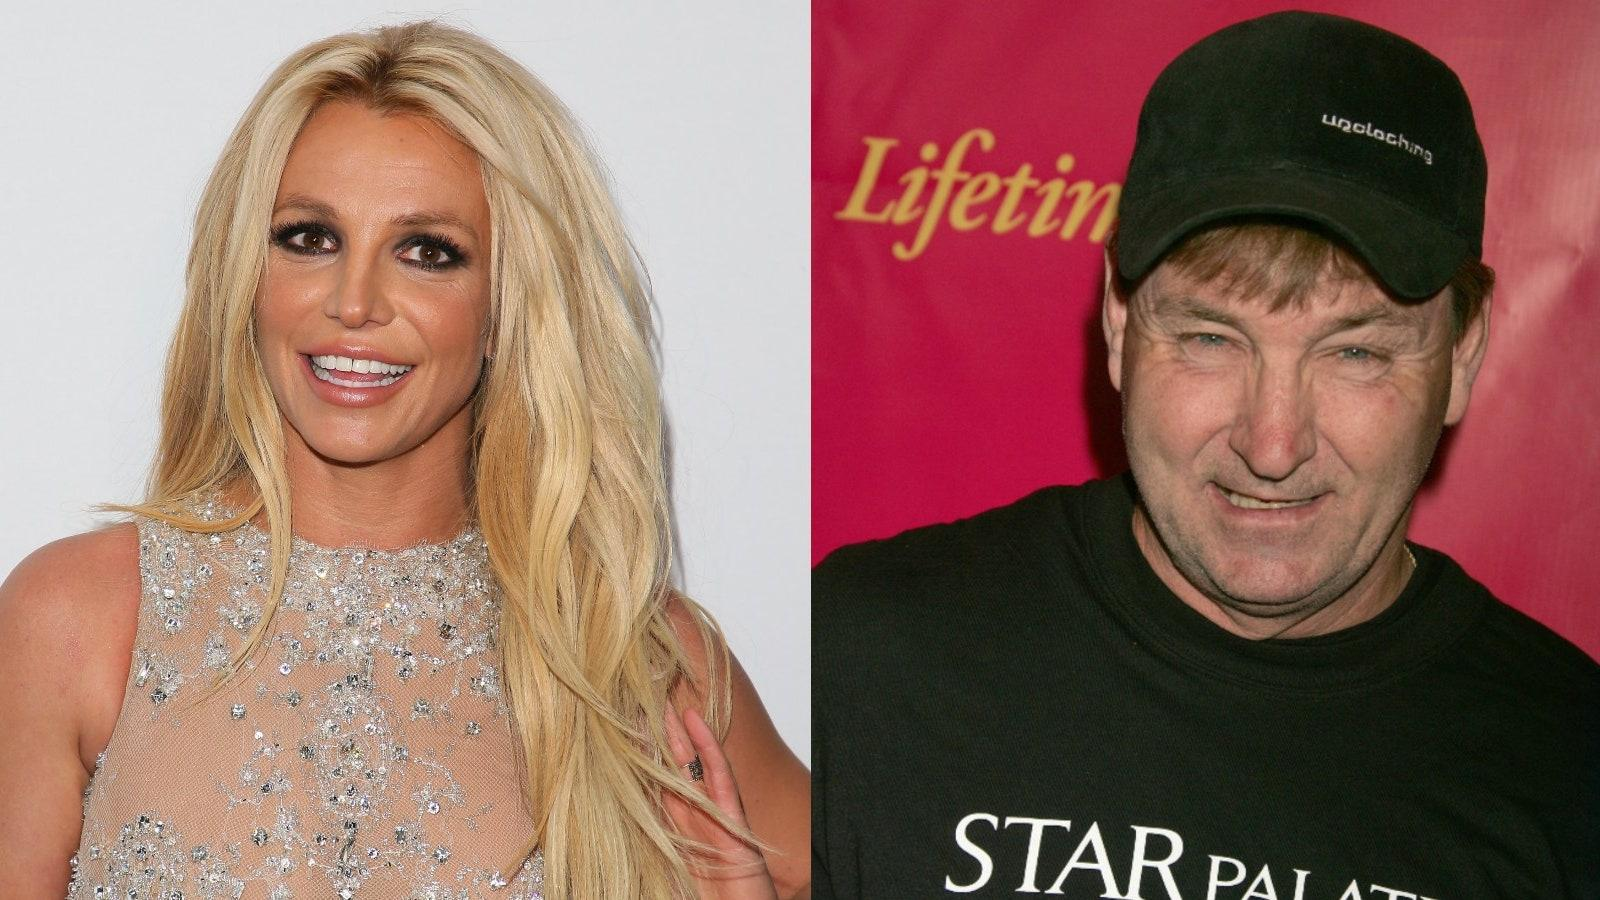 Jamie Spears - Here's Why Britney Spears' Dad Finally Broke His Silence!